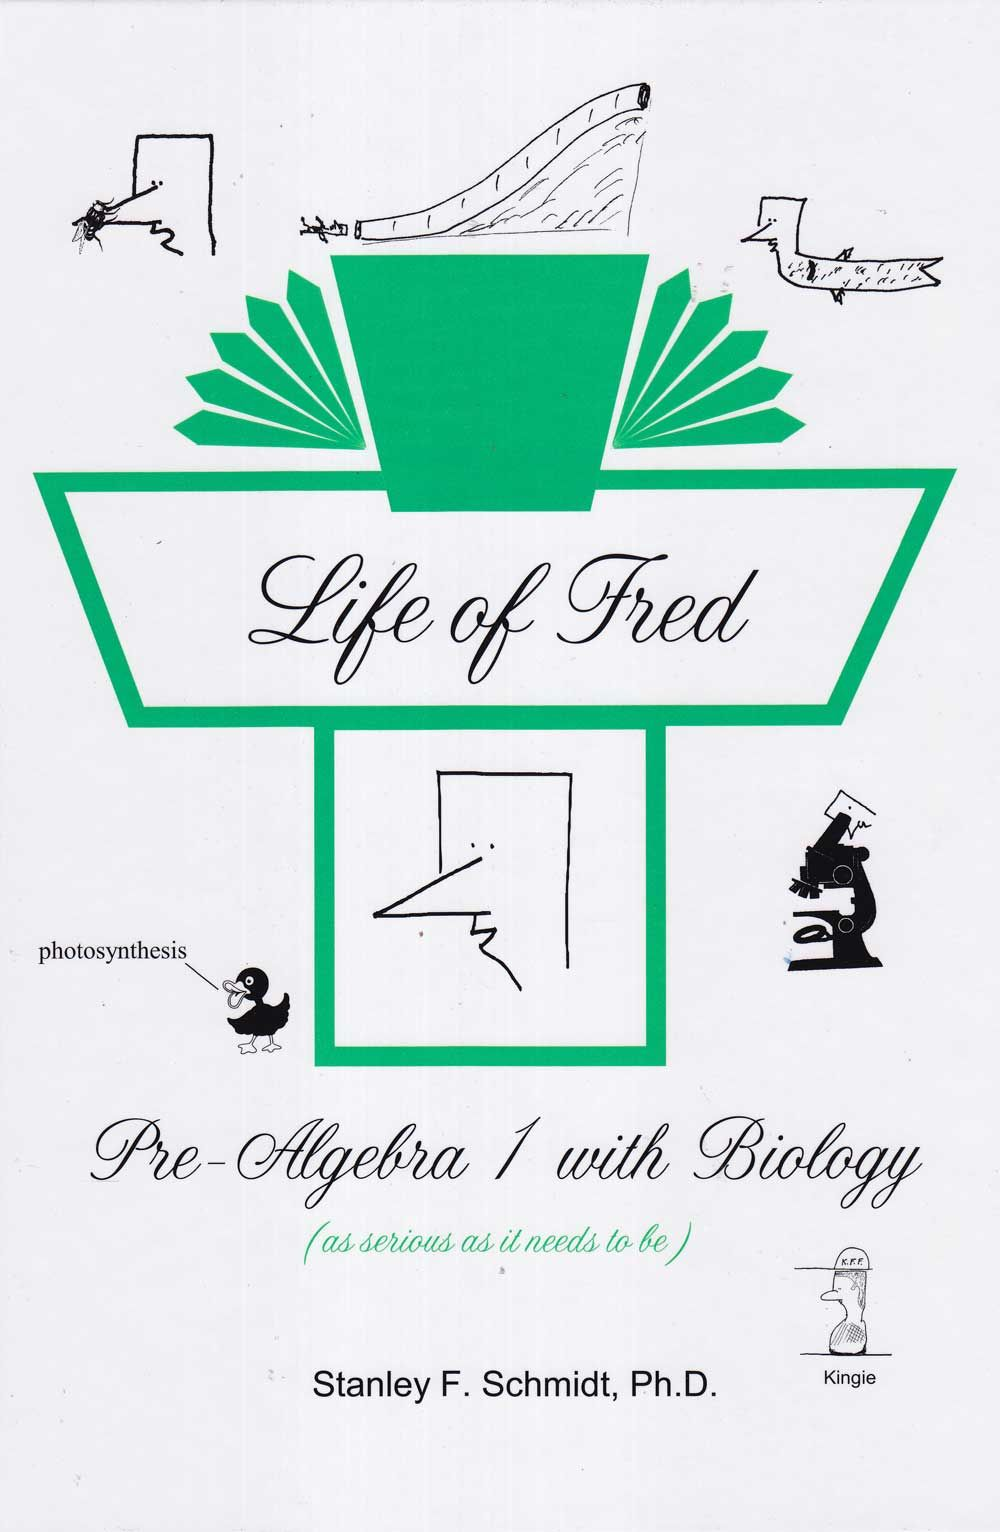 Life of Fred Middle School, Pre-Algebra 1 with Biology, Horrible ...